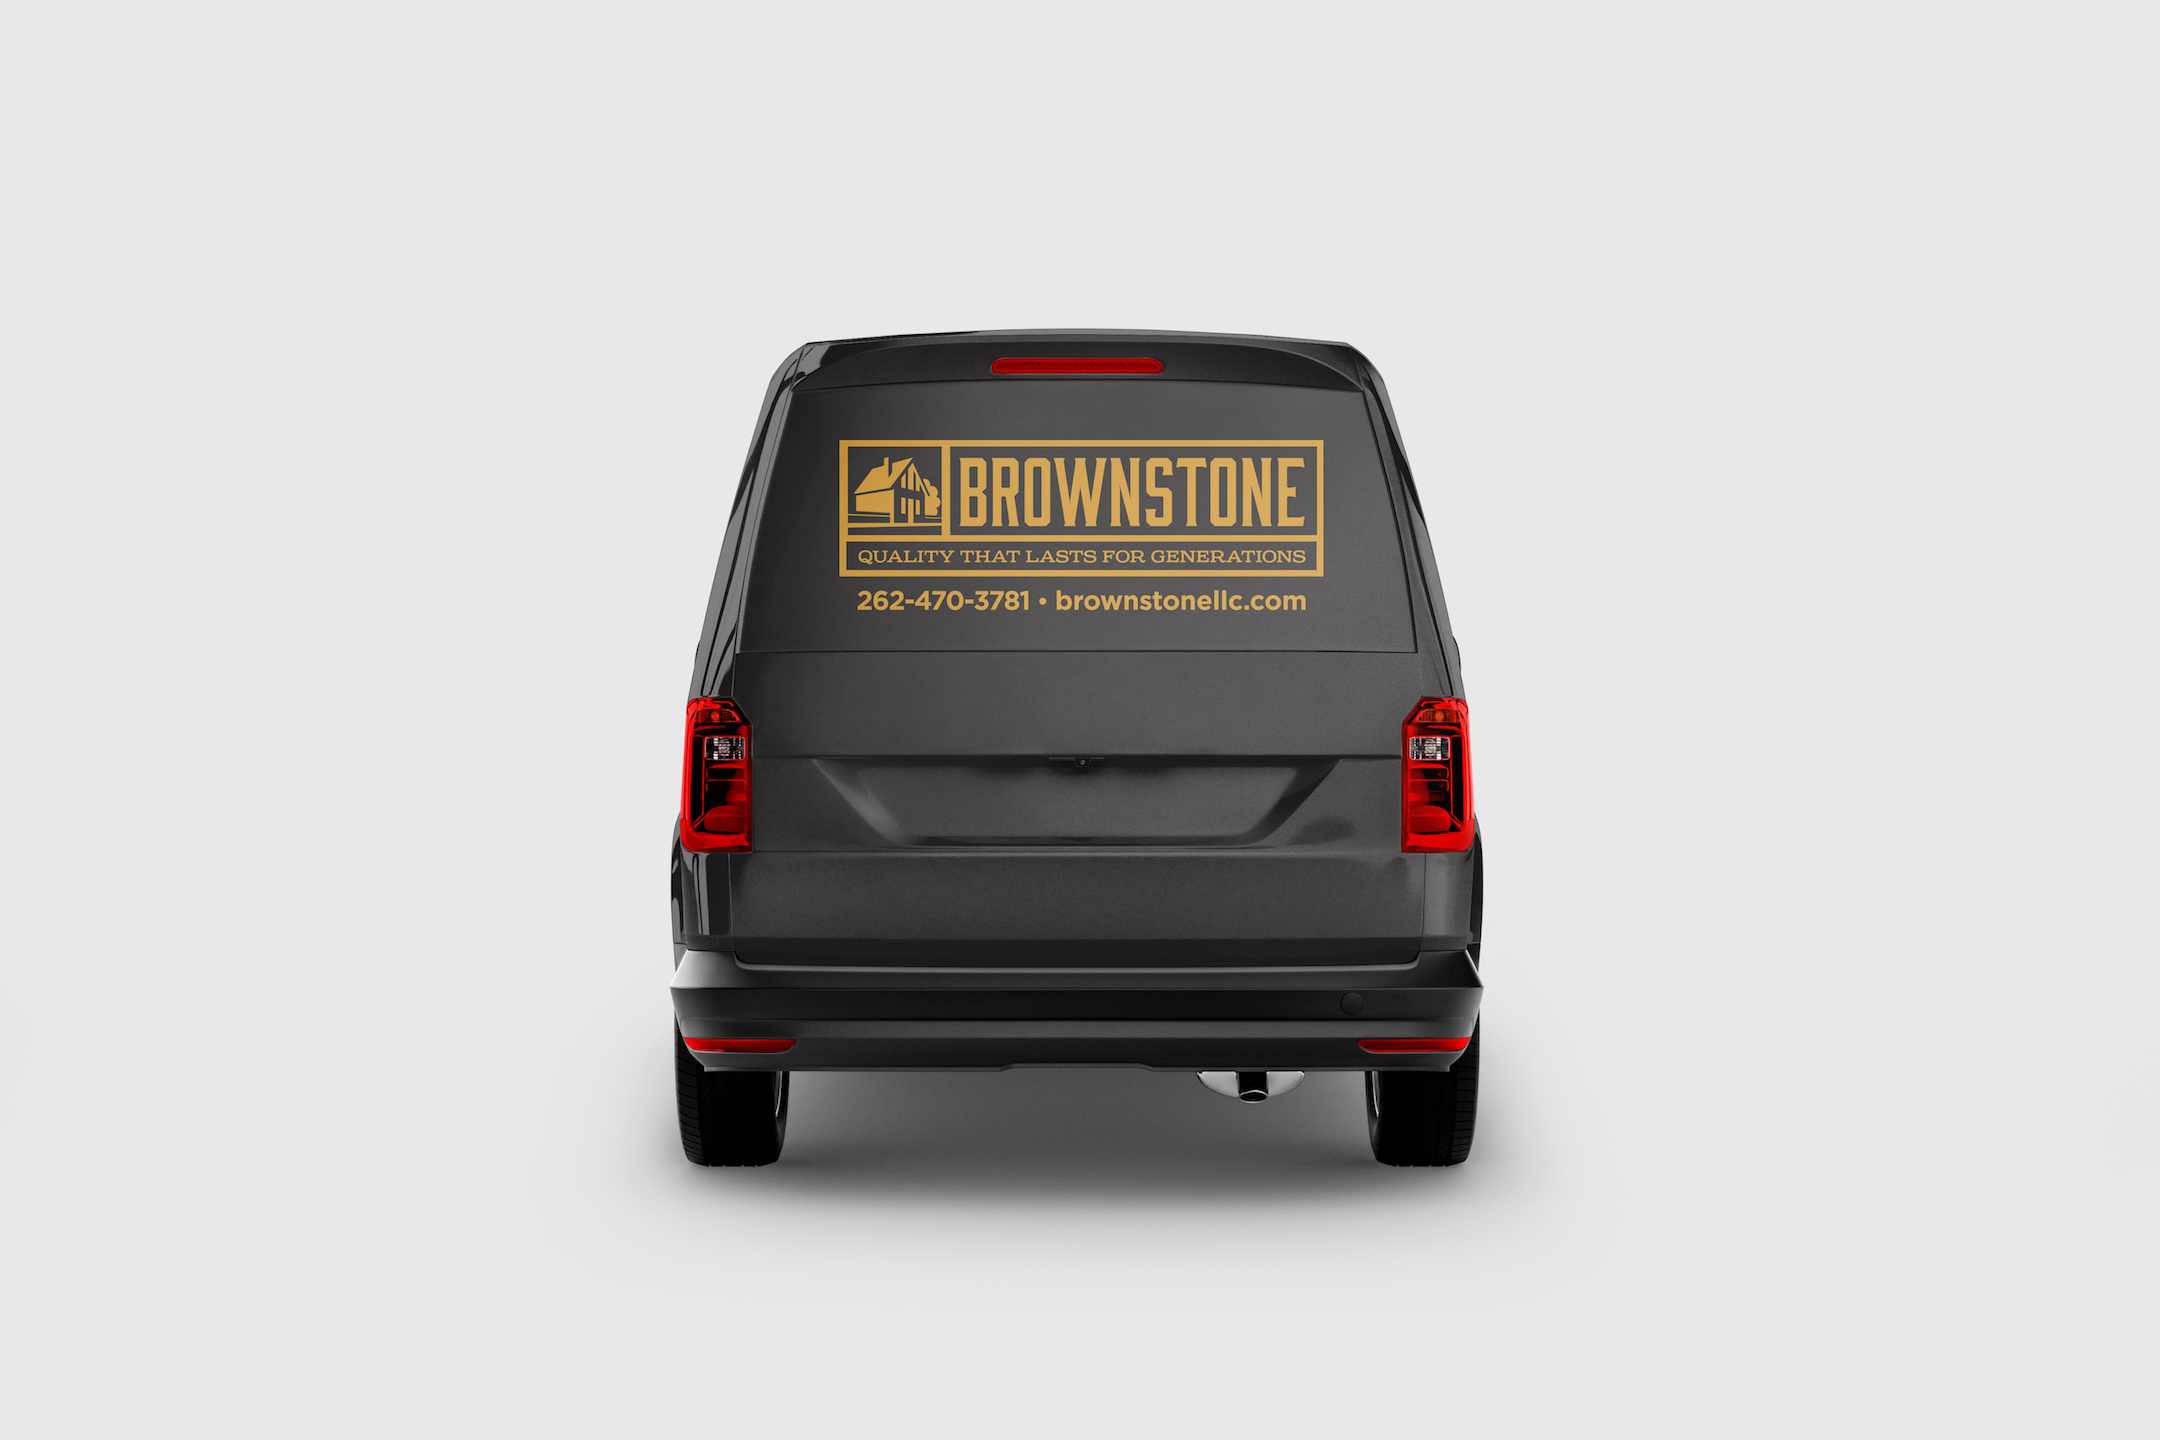 Golden-Antler-Design-Milwaukee-Wisconsin-Branding-Print-Web-Serivces-Vehicle-Graphics-Brownstone